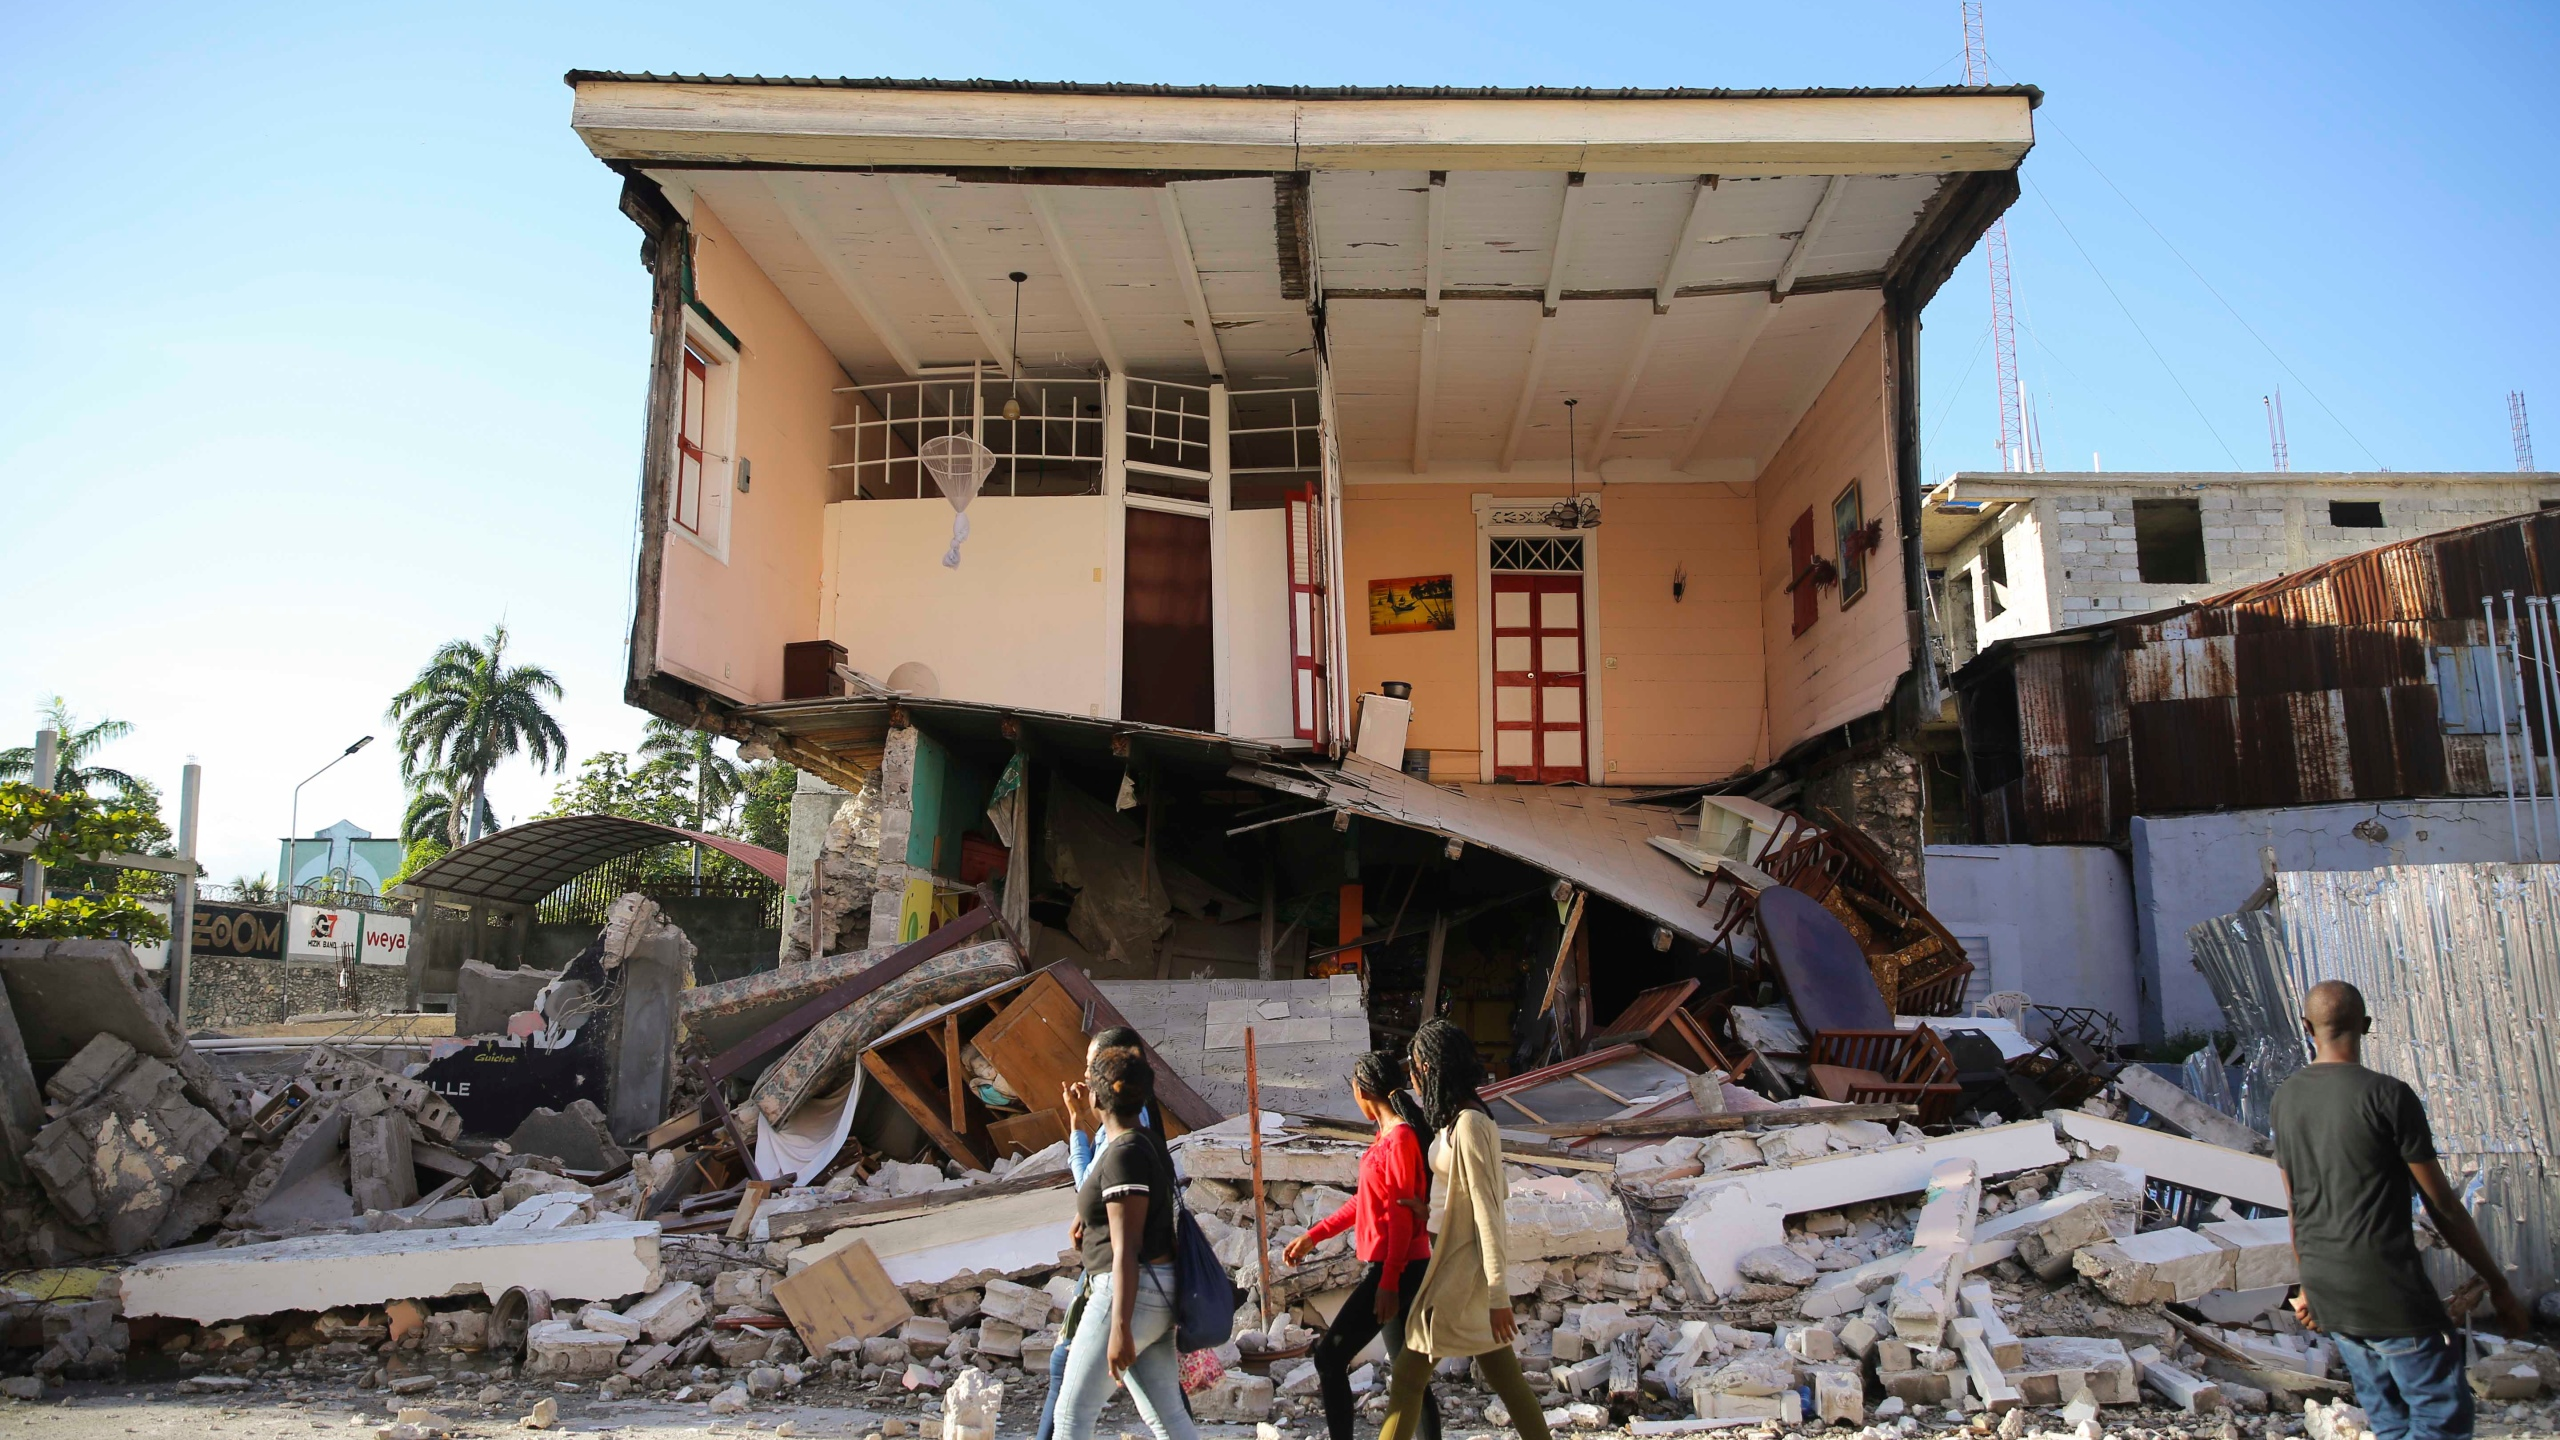 People walk past a home destroyed by the earthquake in Les Cayes, Haiti, Saturday, Aug. 14, 2021. A 7.2 magnitude earthquake struck Haiti on Saturday, with the epicenter about 125 kilometers (78 miles) west of the capital of Port- au-Prince, the US Geological Survey said. (AP Photo/Joseph Odelyn)